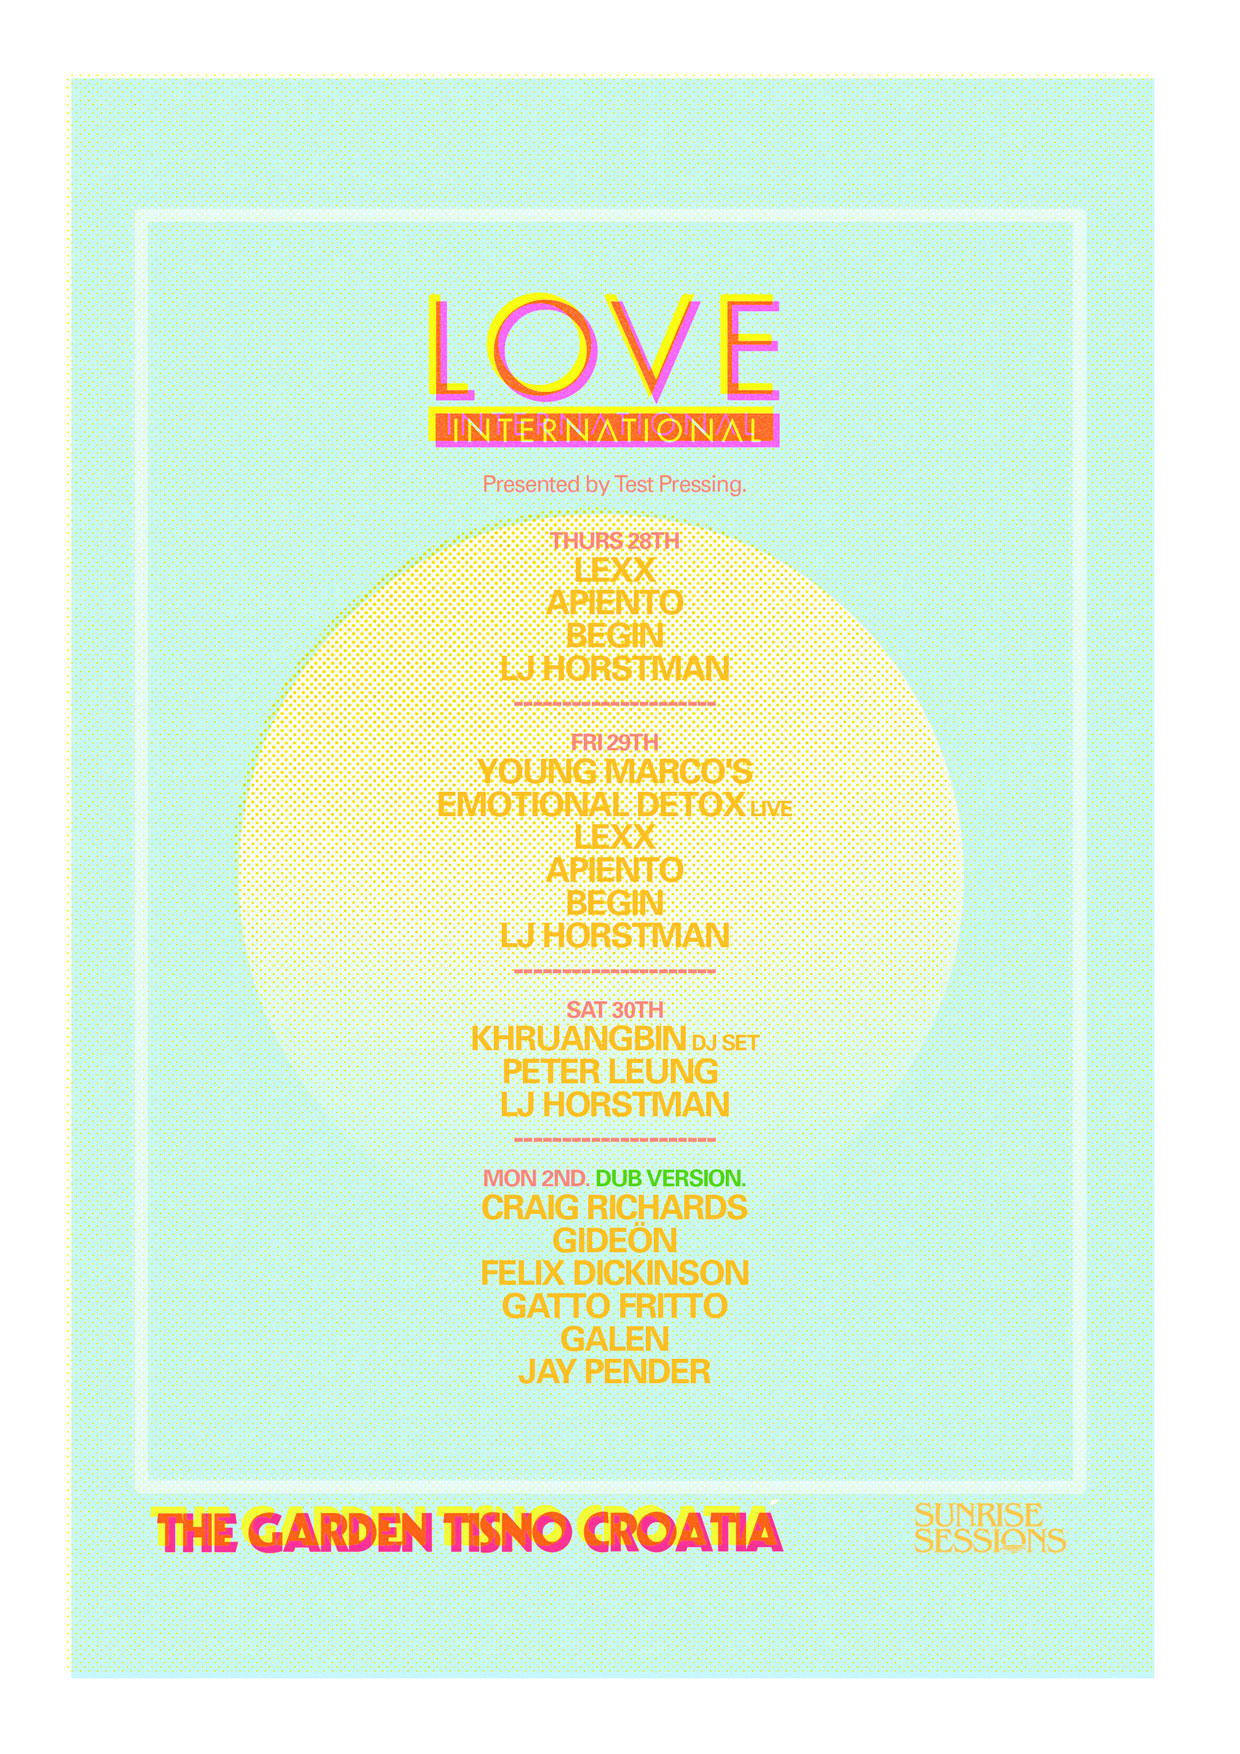 Love International, Craig Richards, Felix Dickinson, Morning, Sessions, Test Pressing, Begin, Young Marco, Lexx, LJ Horstman,